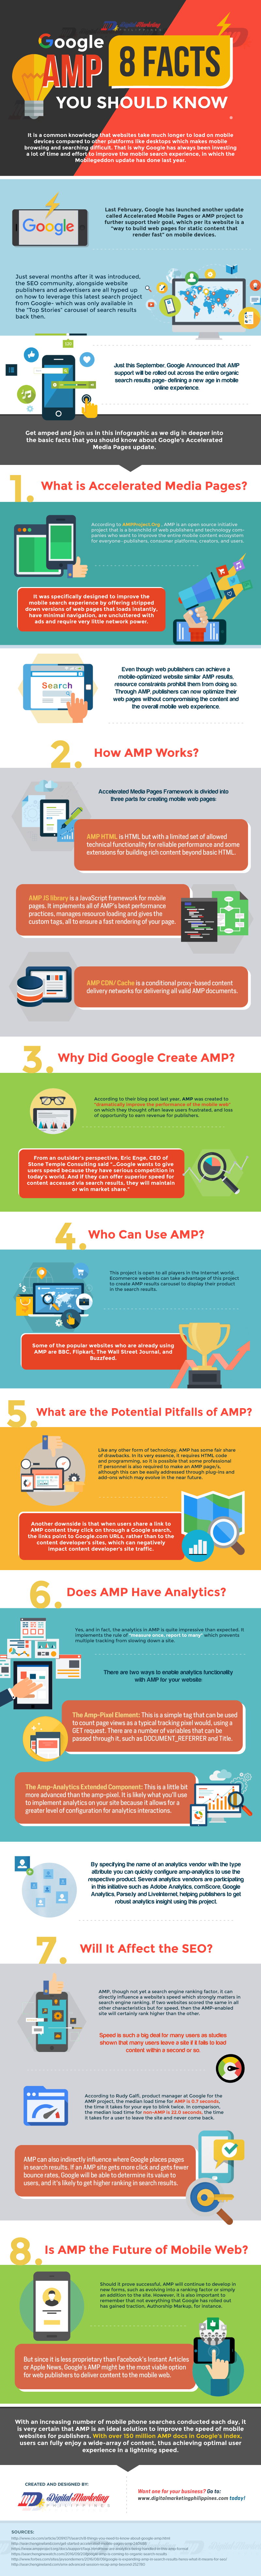 Google AMP  Facts